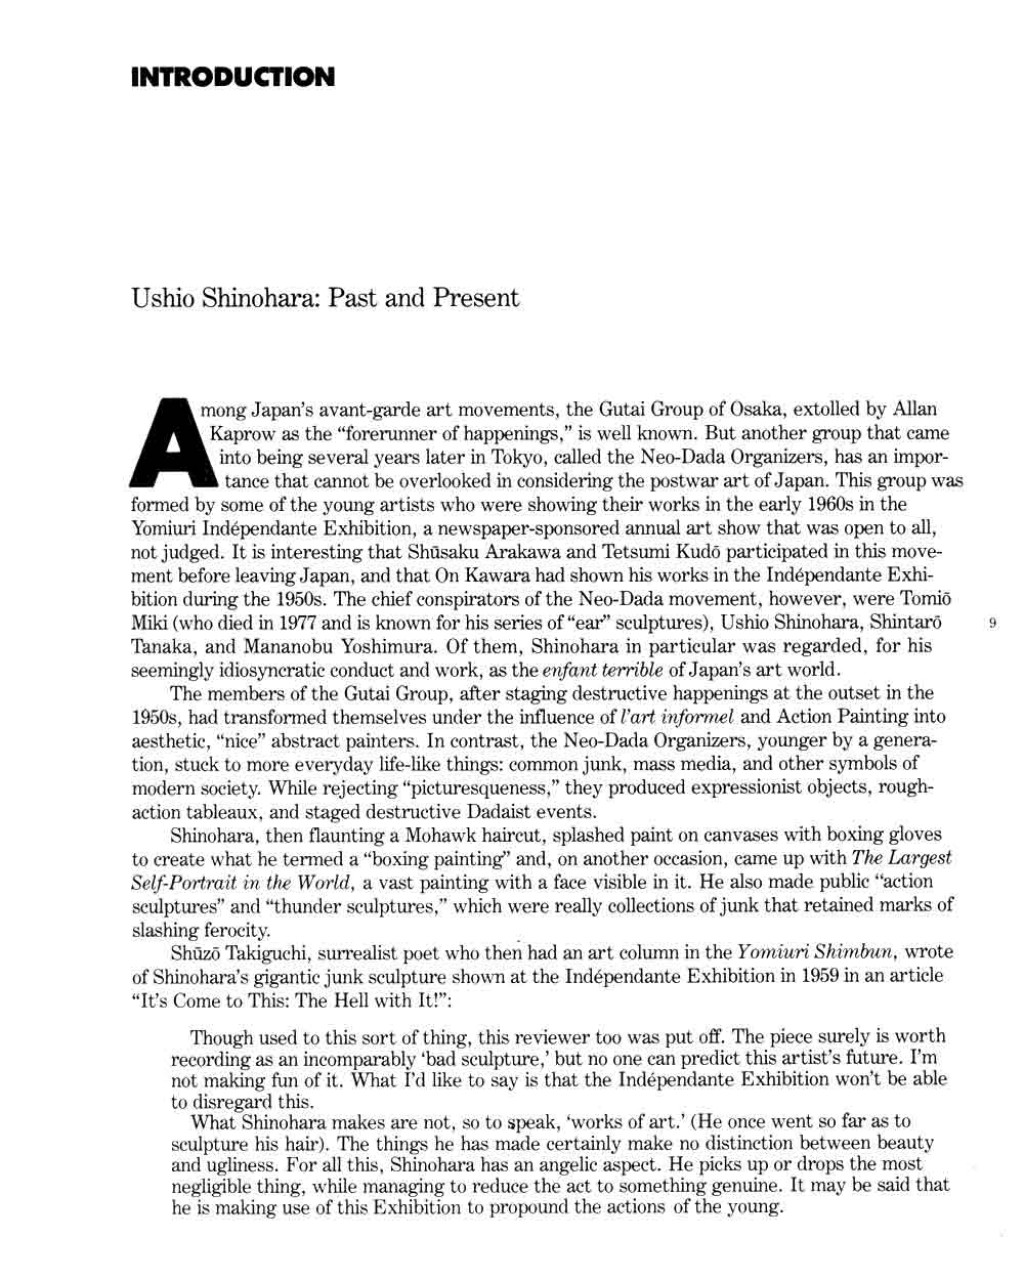 004 Cite An Essay Example Ushio Shinohara Past And Present Pg 1 Striking How To From A Textbook In Mla Format Book Apa Style Large